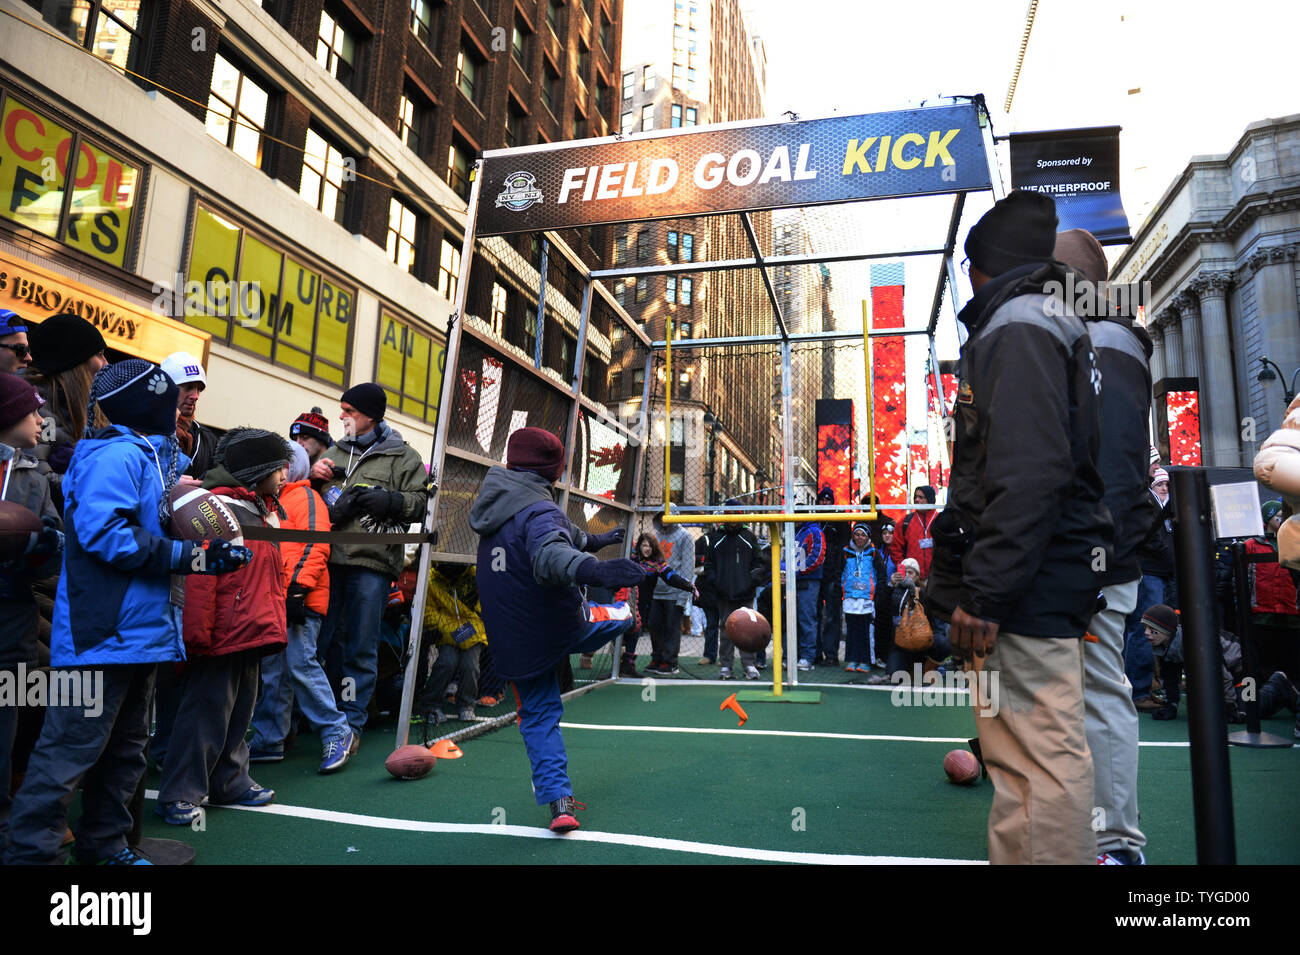 Young fans get a chance to kick a field goal near Times Square at the NFL Super Bowl Boulevard Fan Experience that takes up 13 blocks of Broadway in downtown Manhattan, New York on Wednesday, January 30, 2014.  Super Bowl XLVIII fans from the Denver Broncos and Seattle Seahawks fill the streets as they get read for the game on Sunday, February 2, 2014.  UPI/Pat Benic - Stock Image